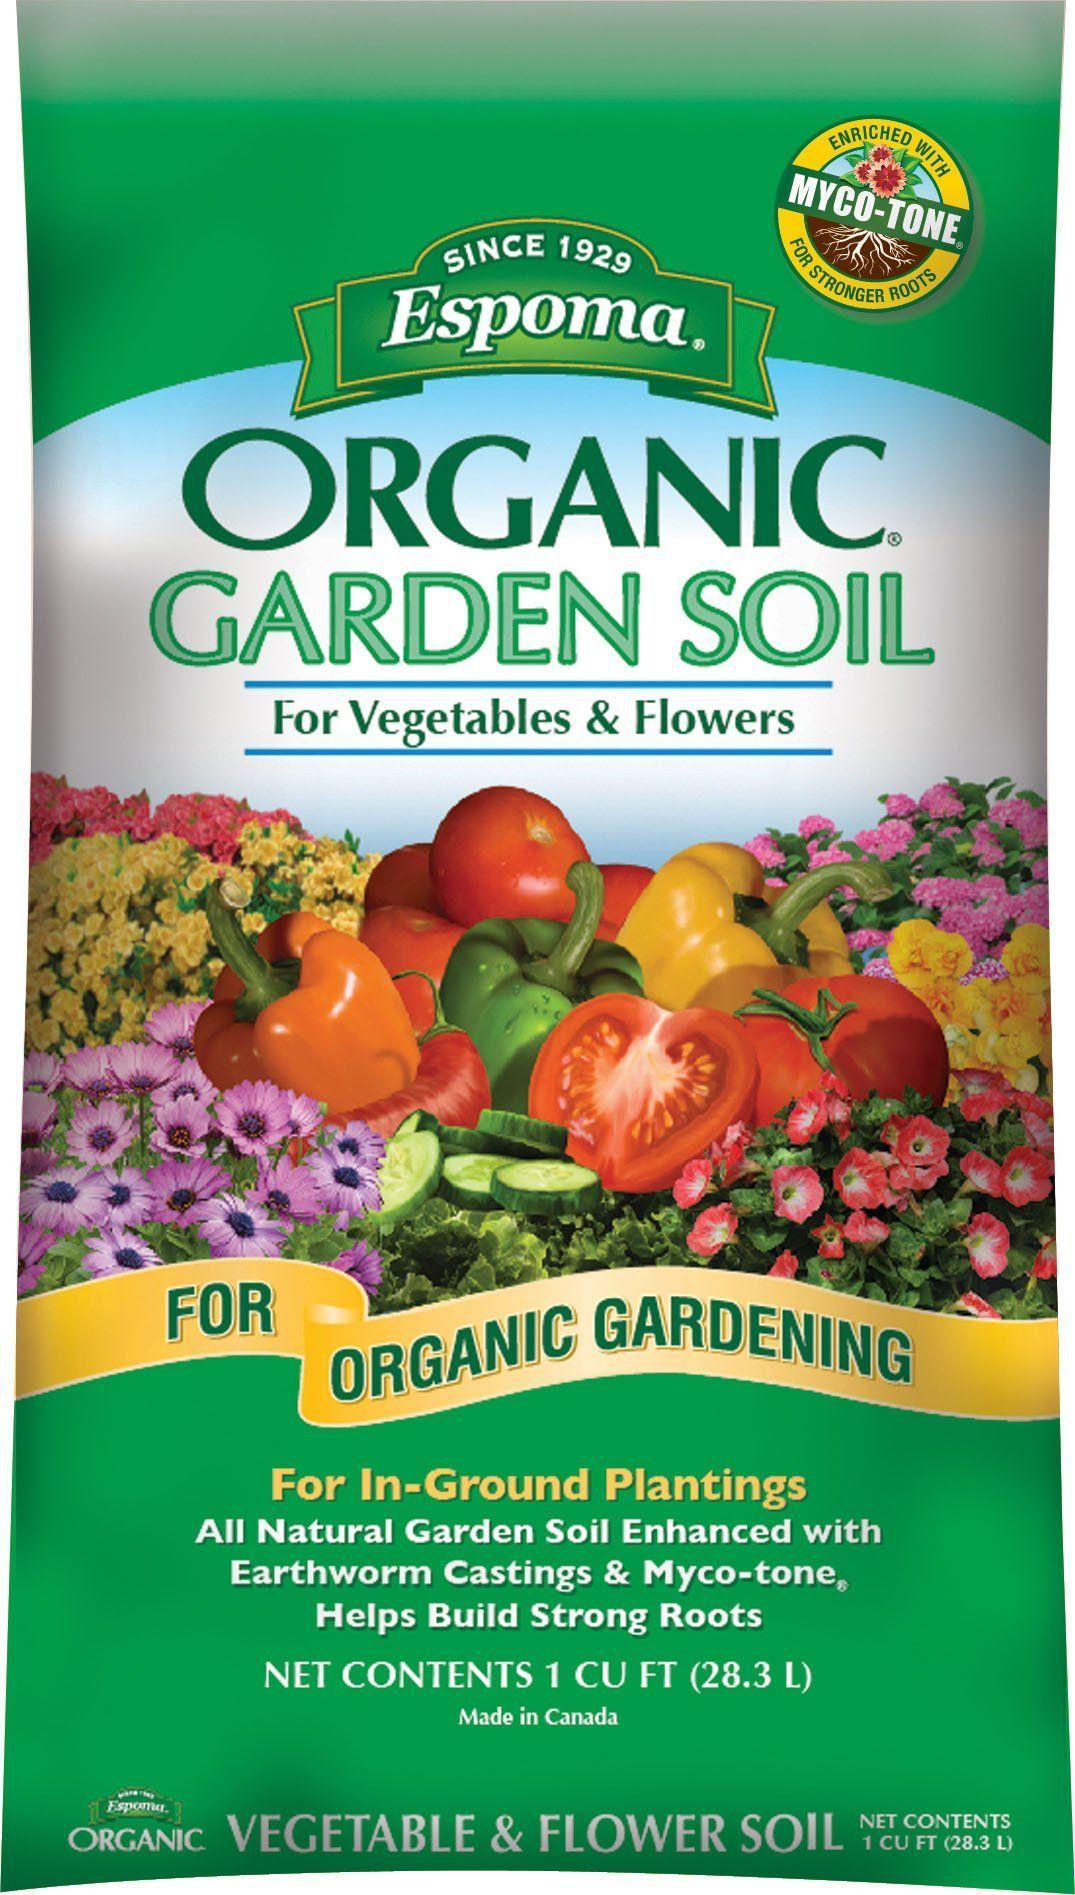 and espoma foot cubic vegetables soil flowers garden company for pin soils organic